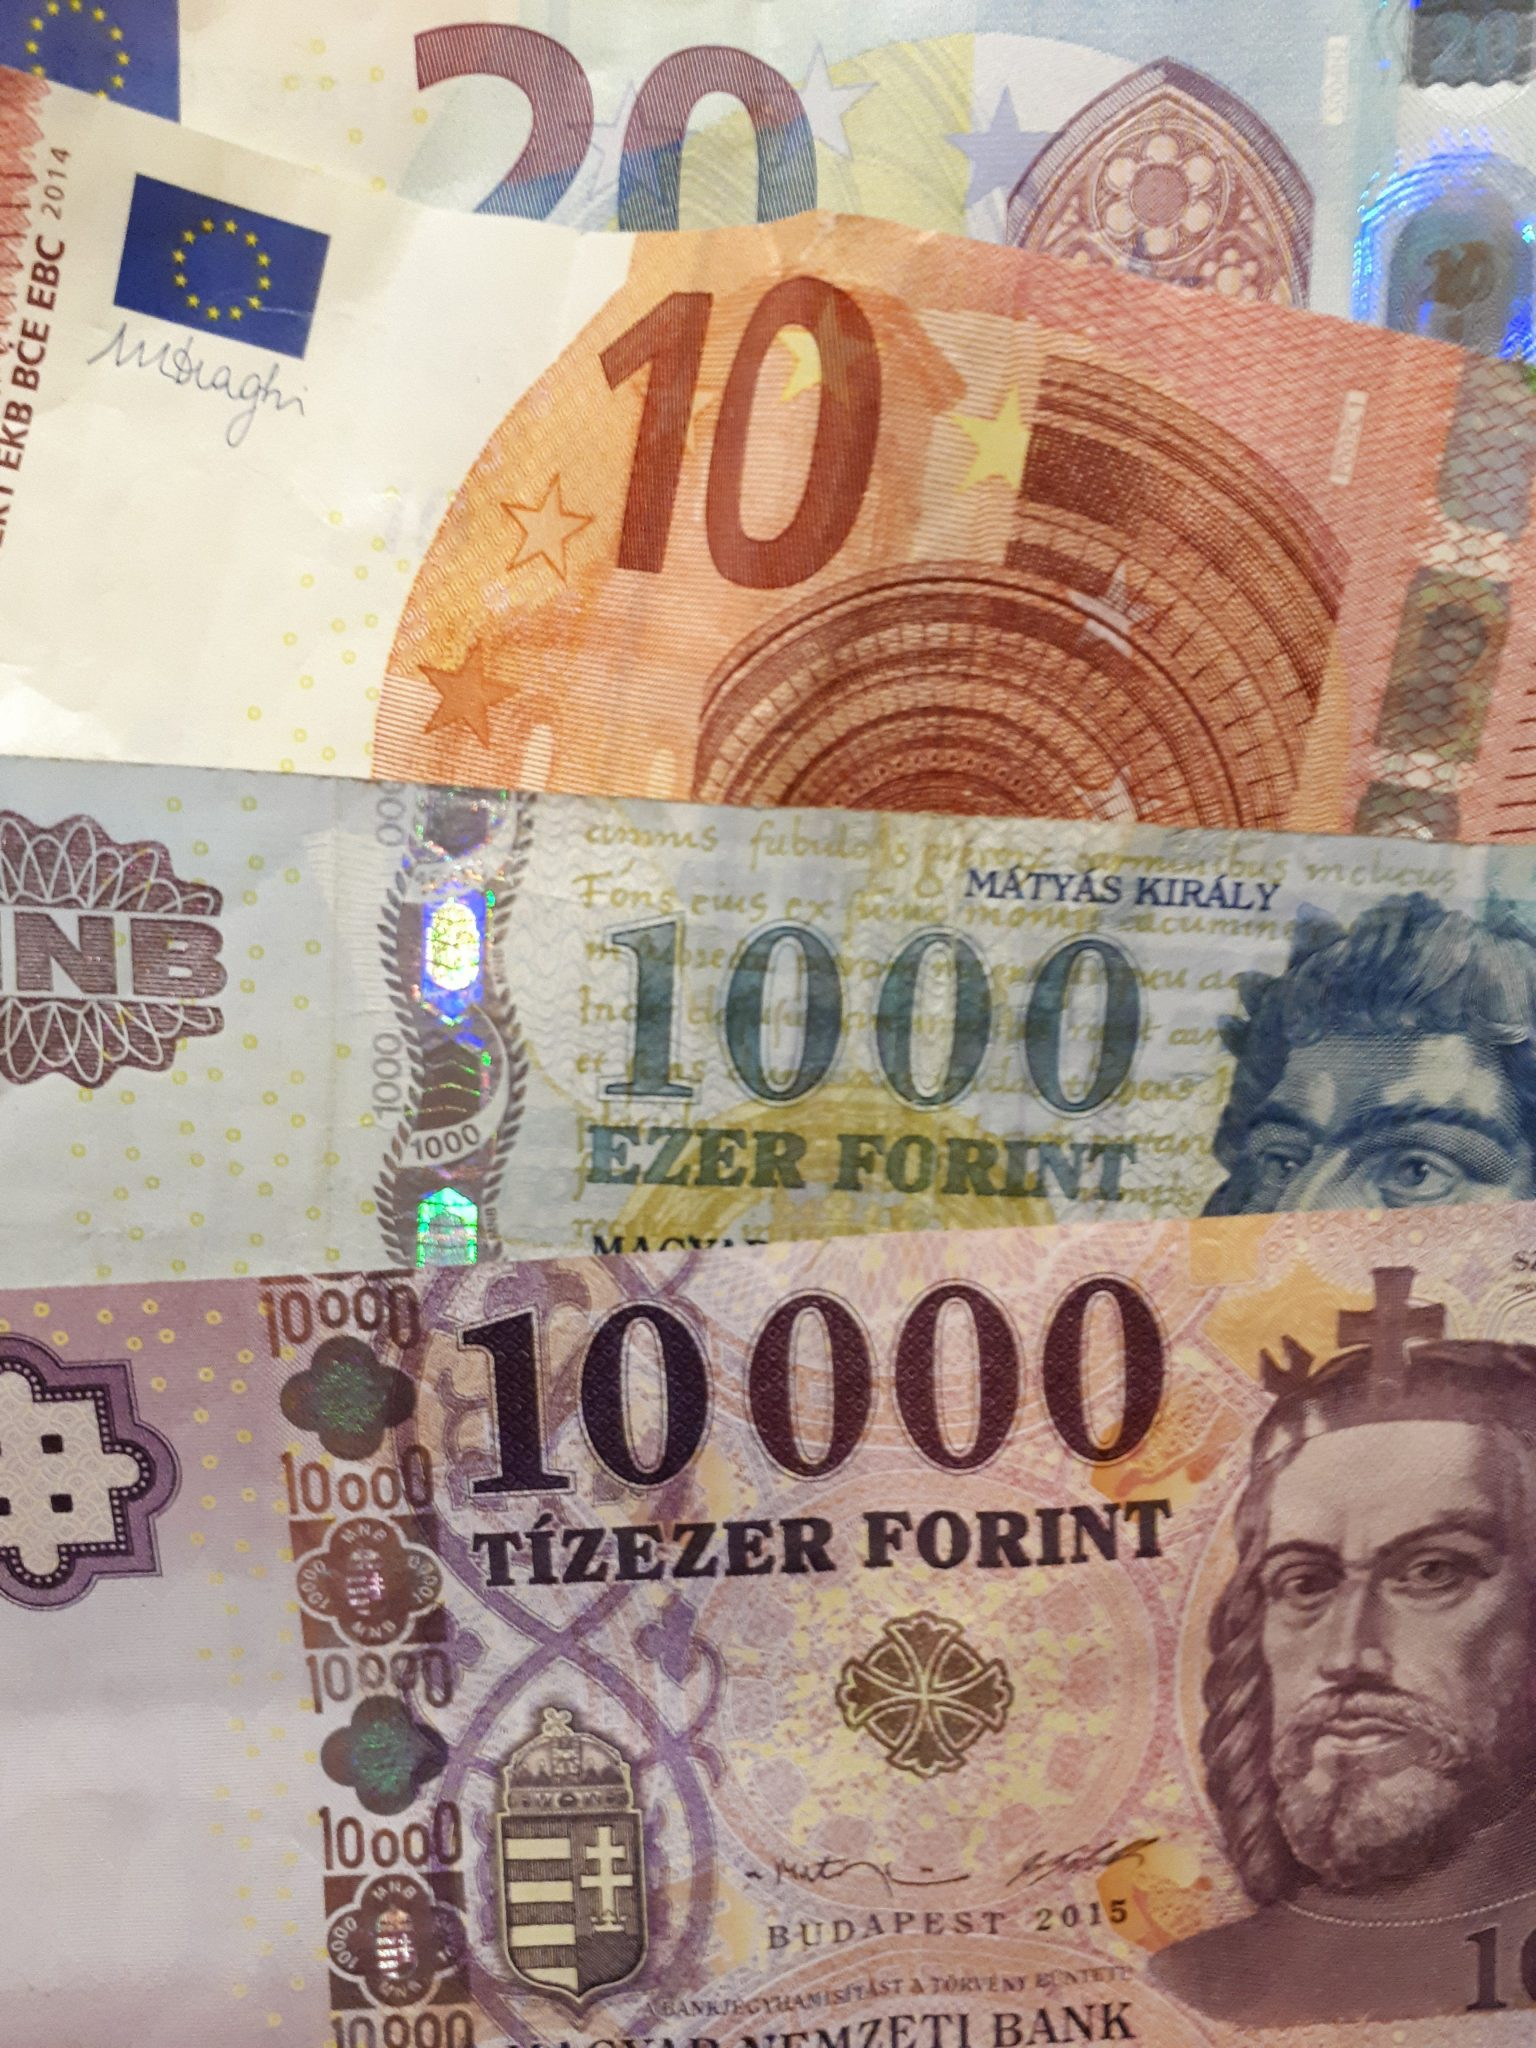 Hungary Uses The Forint Bottom Two Bills And Not Euro Top For Pretty Much Everything Don T Expect To Be Able Use Euros In Budapest